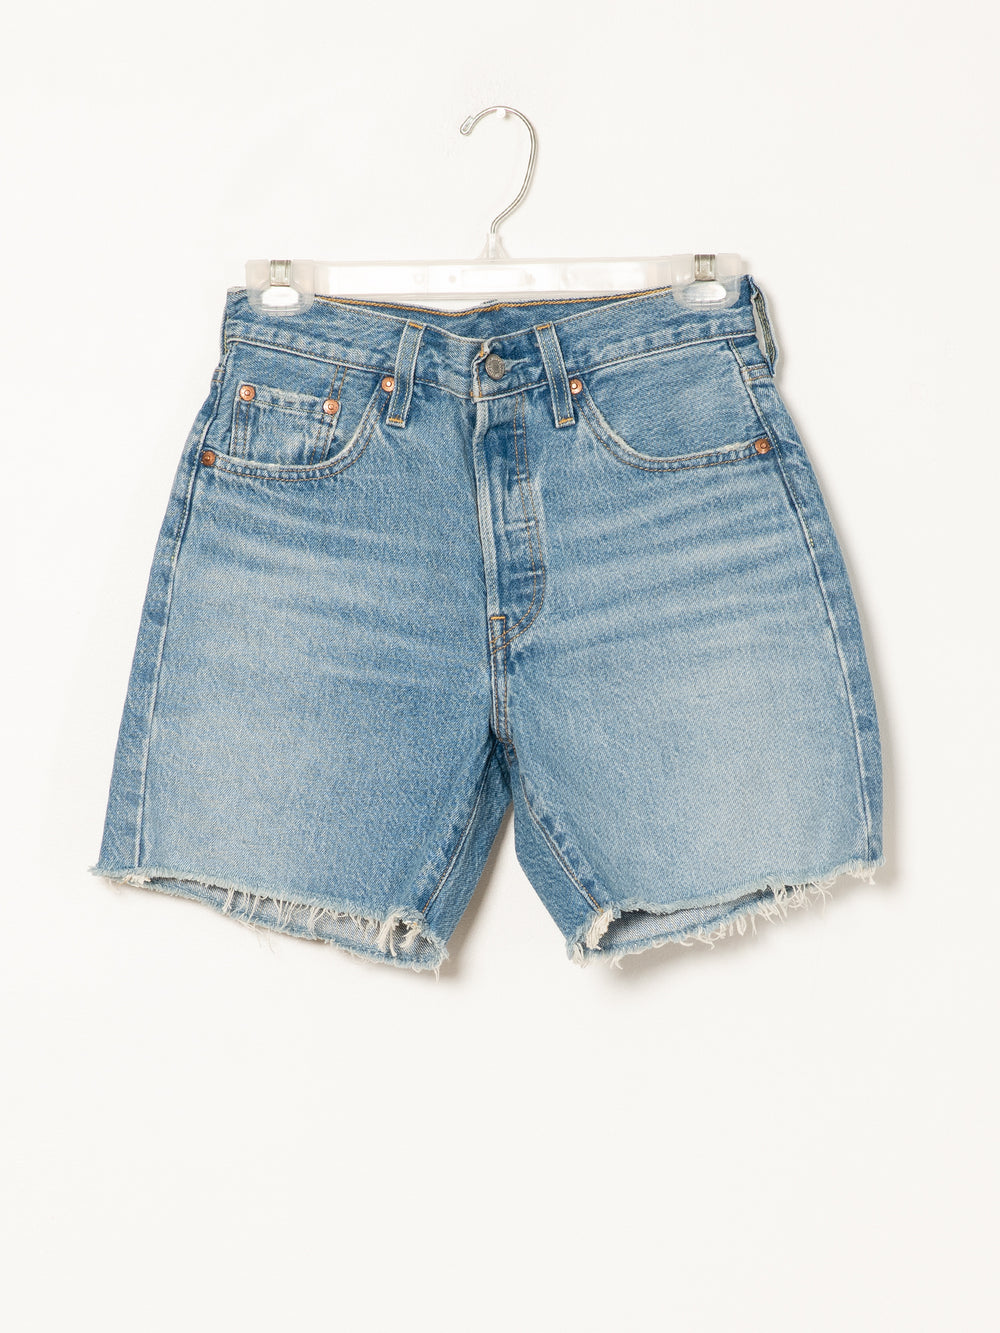 WOMENS 501 MID THIGH SHORT - DENIM